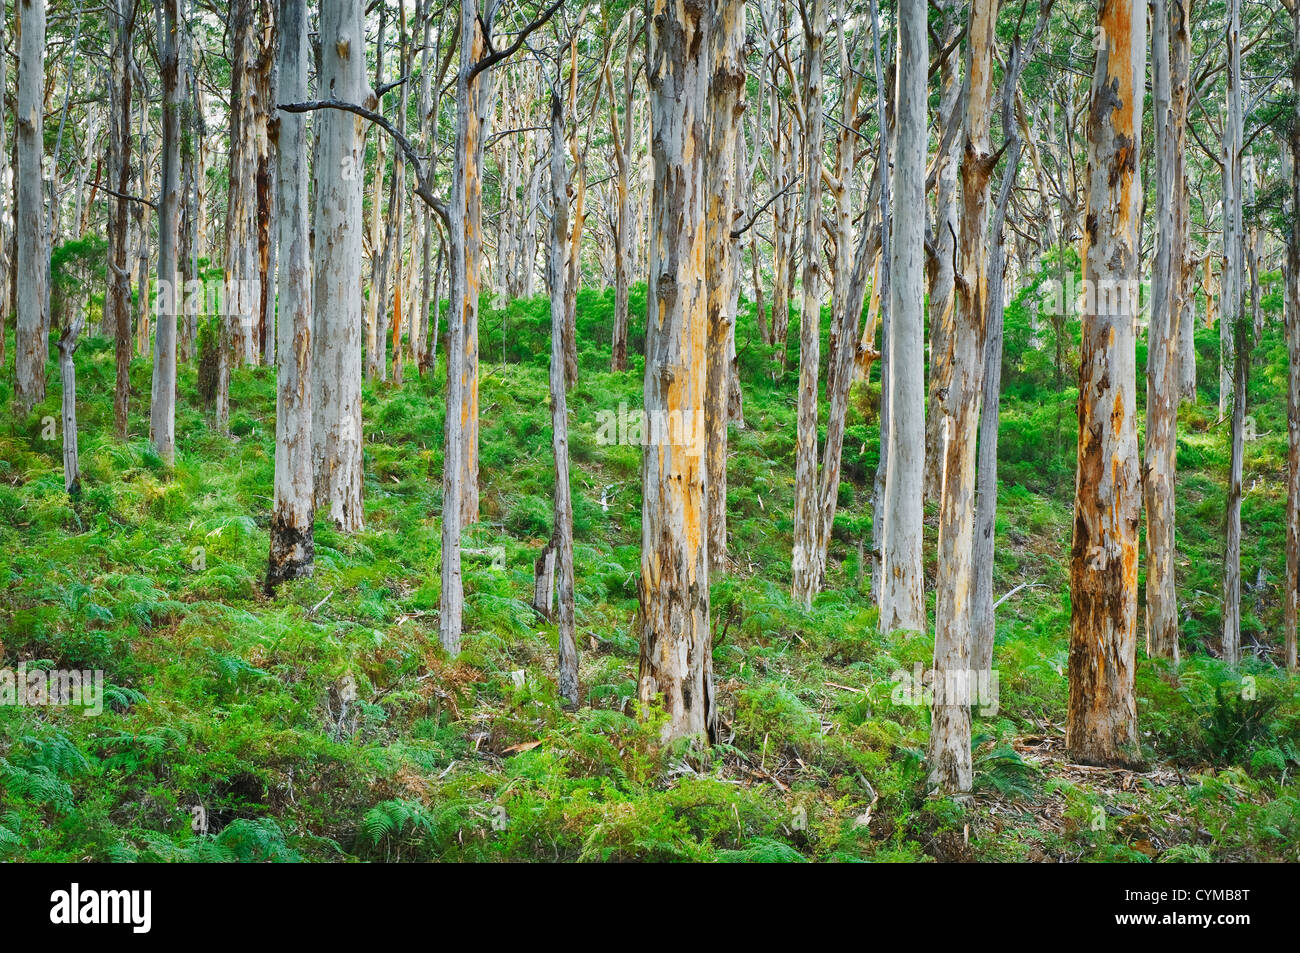 Tall Karri Trees in Boranup Forest. - Stock Image